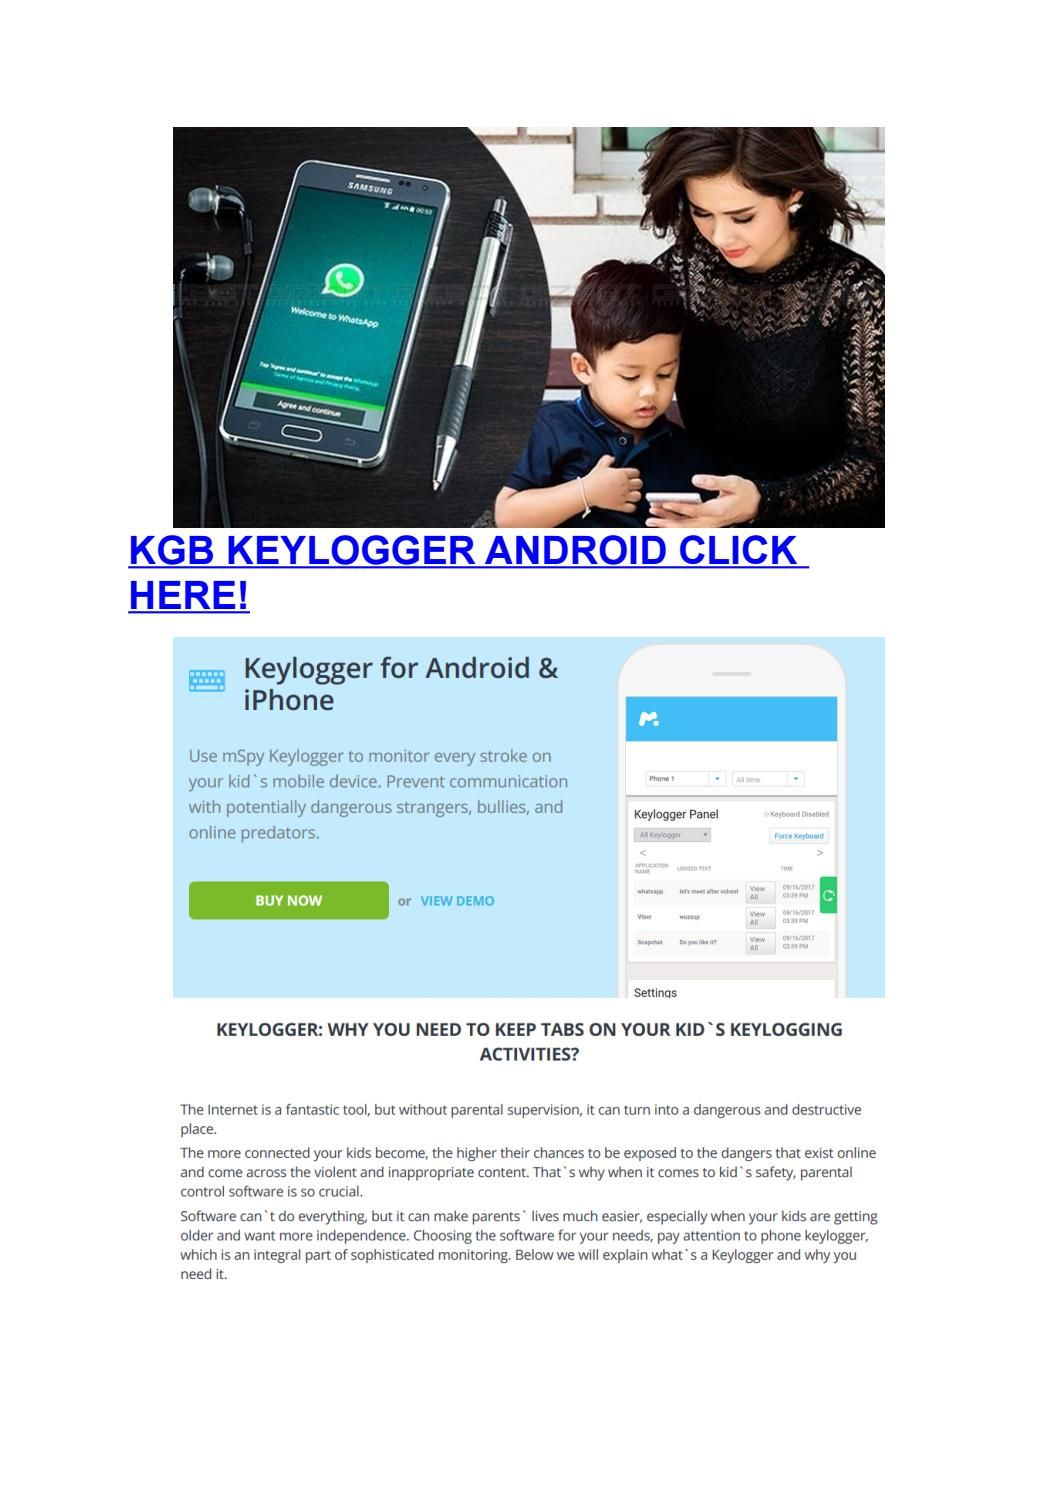 Kgb Keylogger Android by faabler - issuu